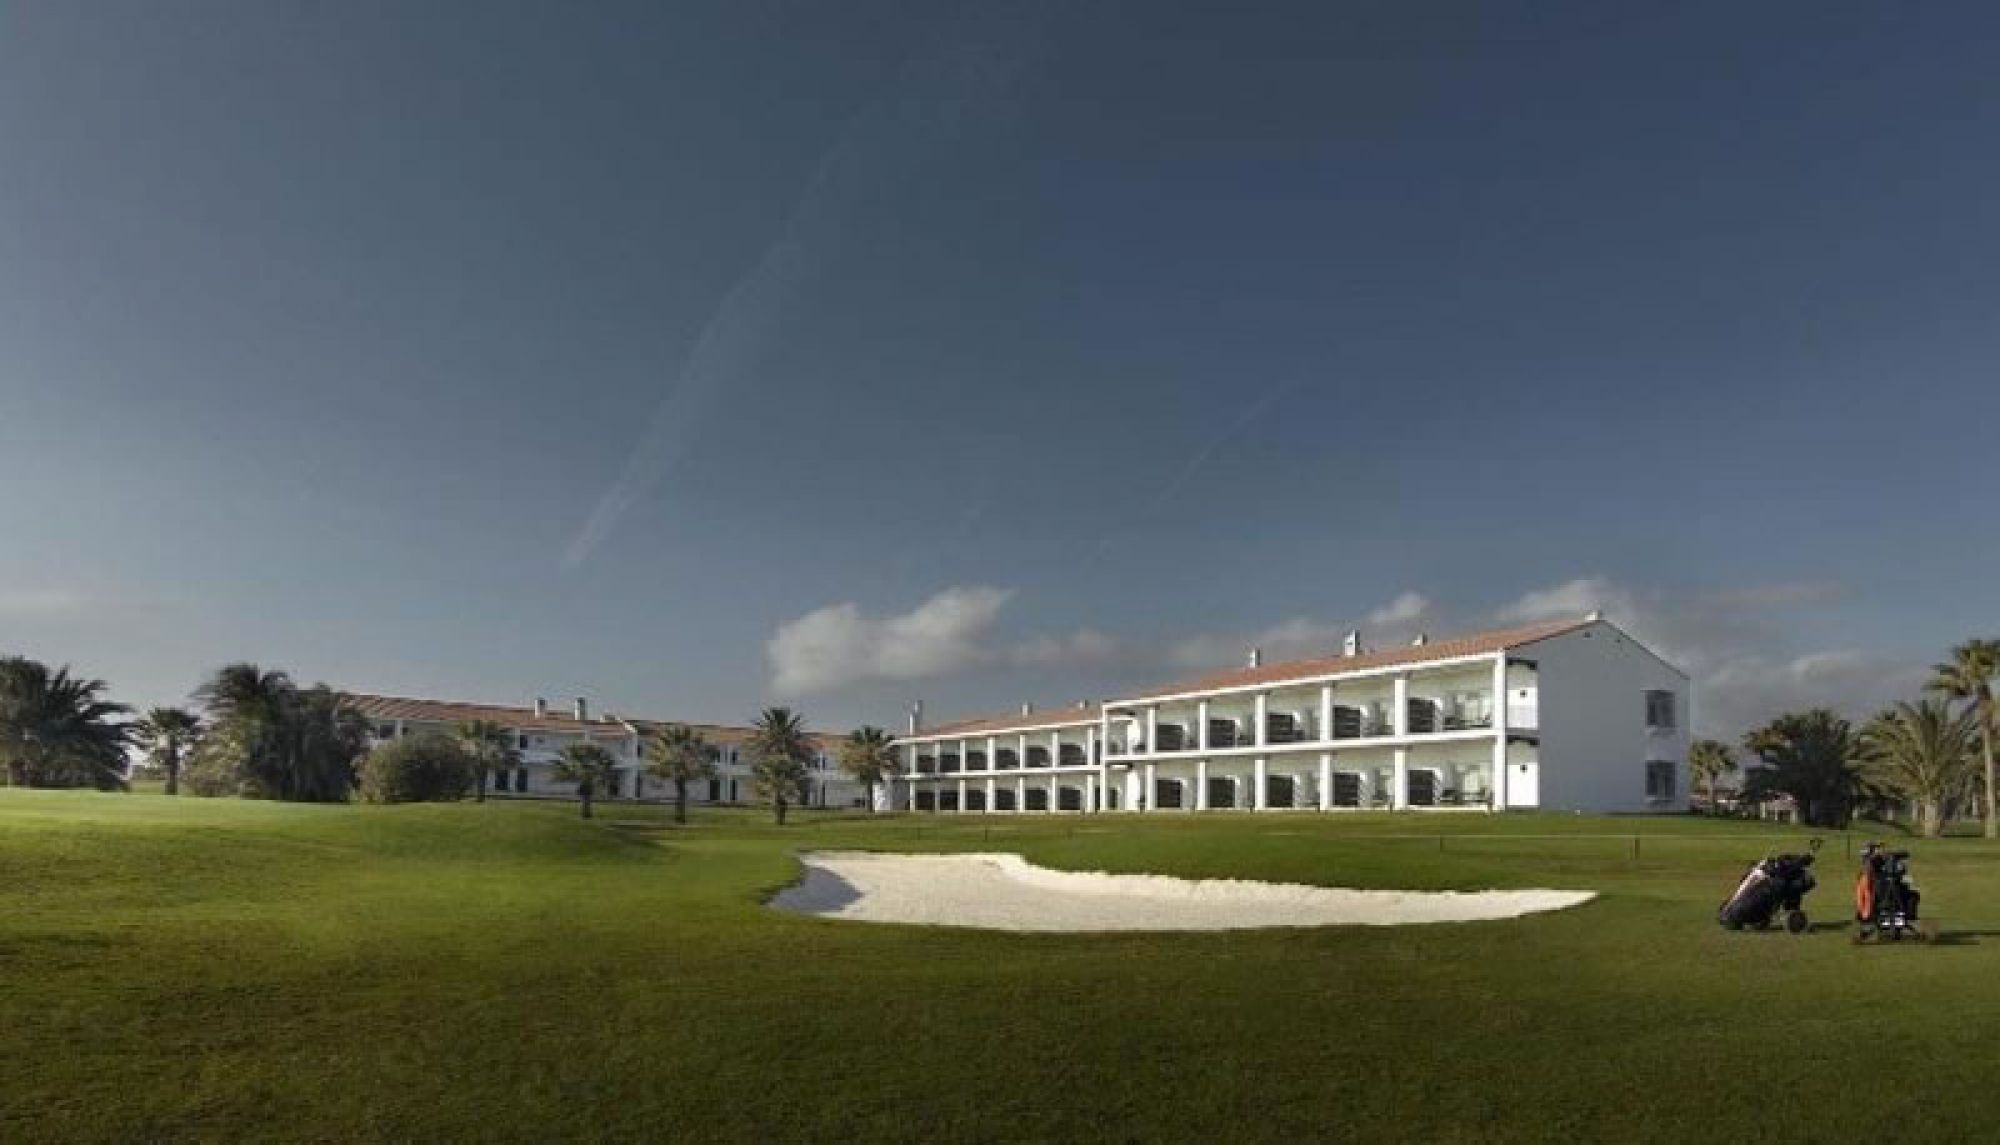 All The Parador de Malaga Golf's lovely golf course situated in dazzling Costa Del Sol.